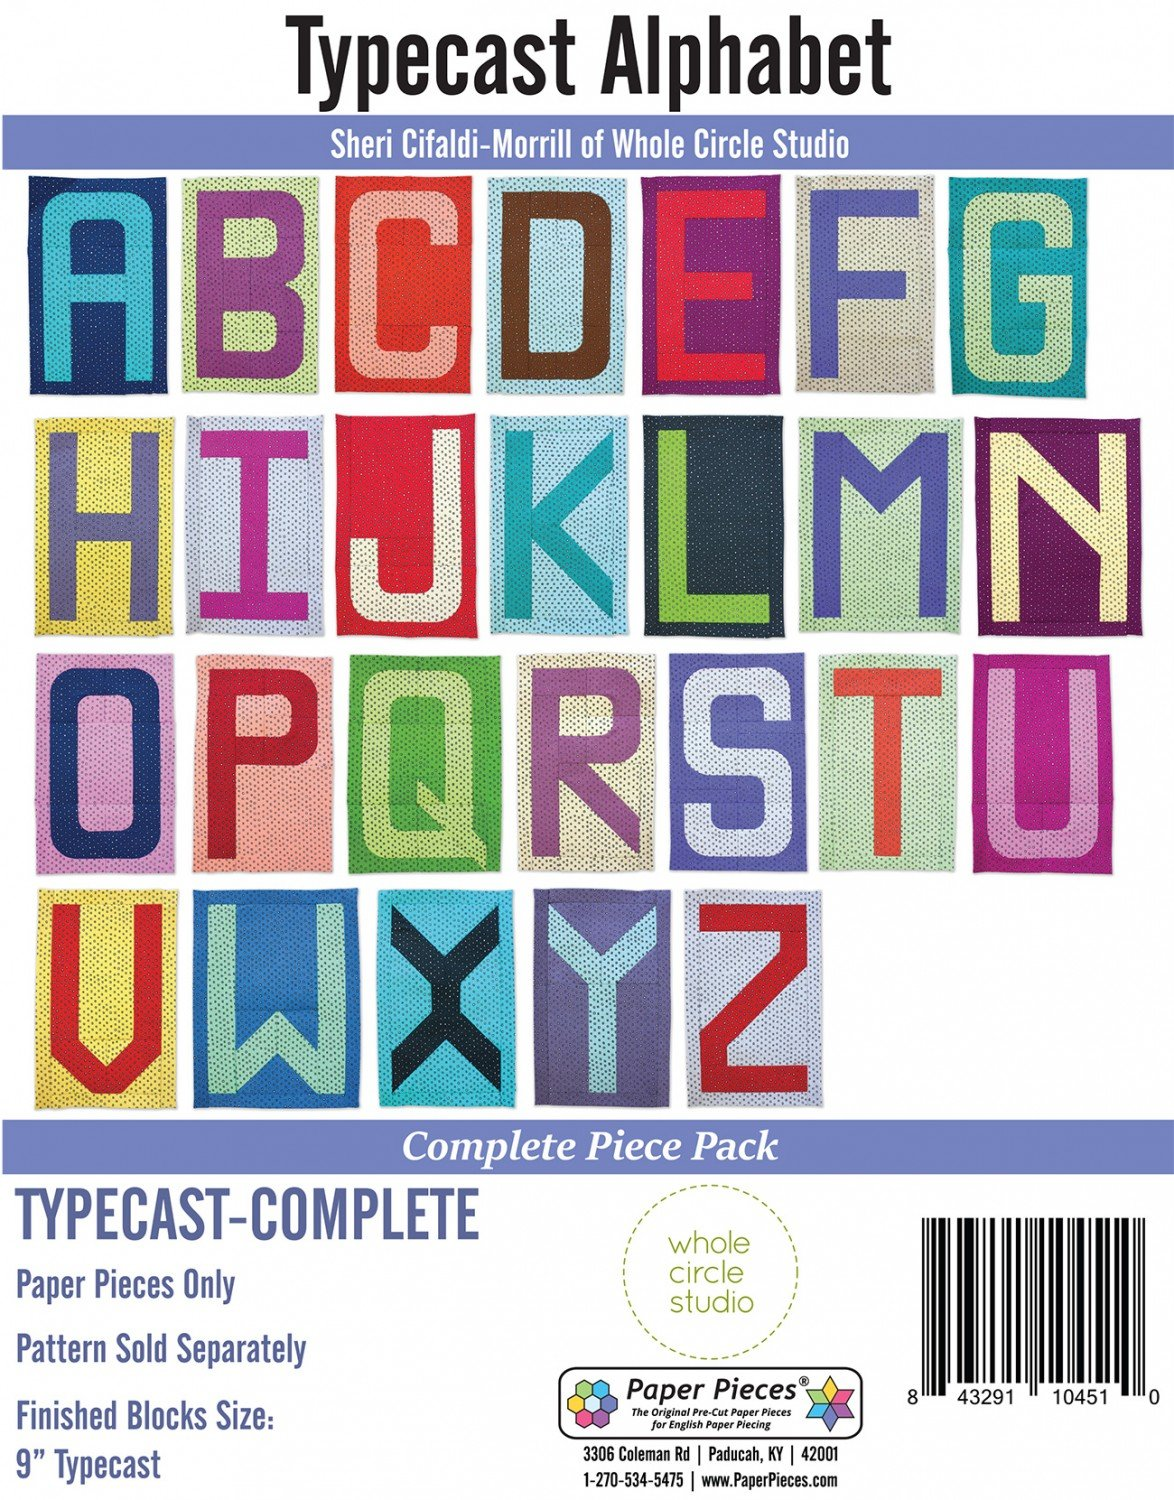 Whole Circle Studio - Typecast Alphabet Blocks Paper Piece Pack